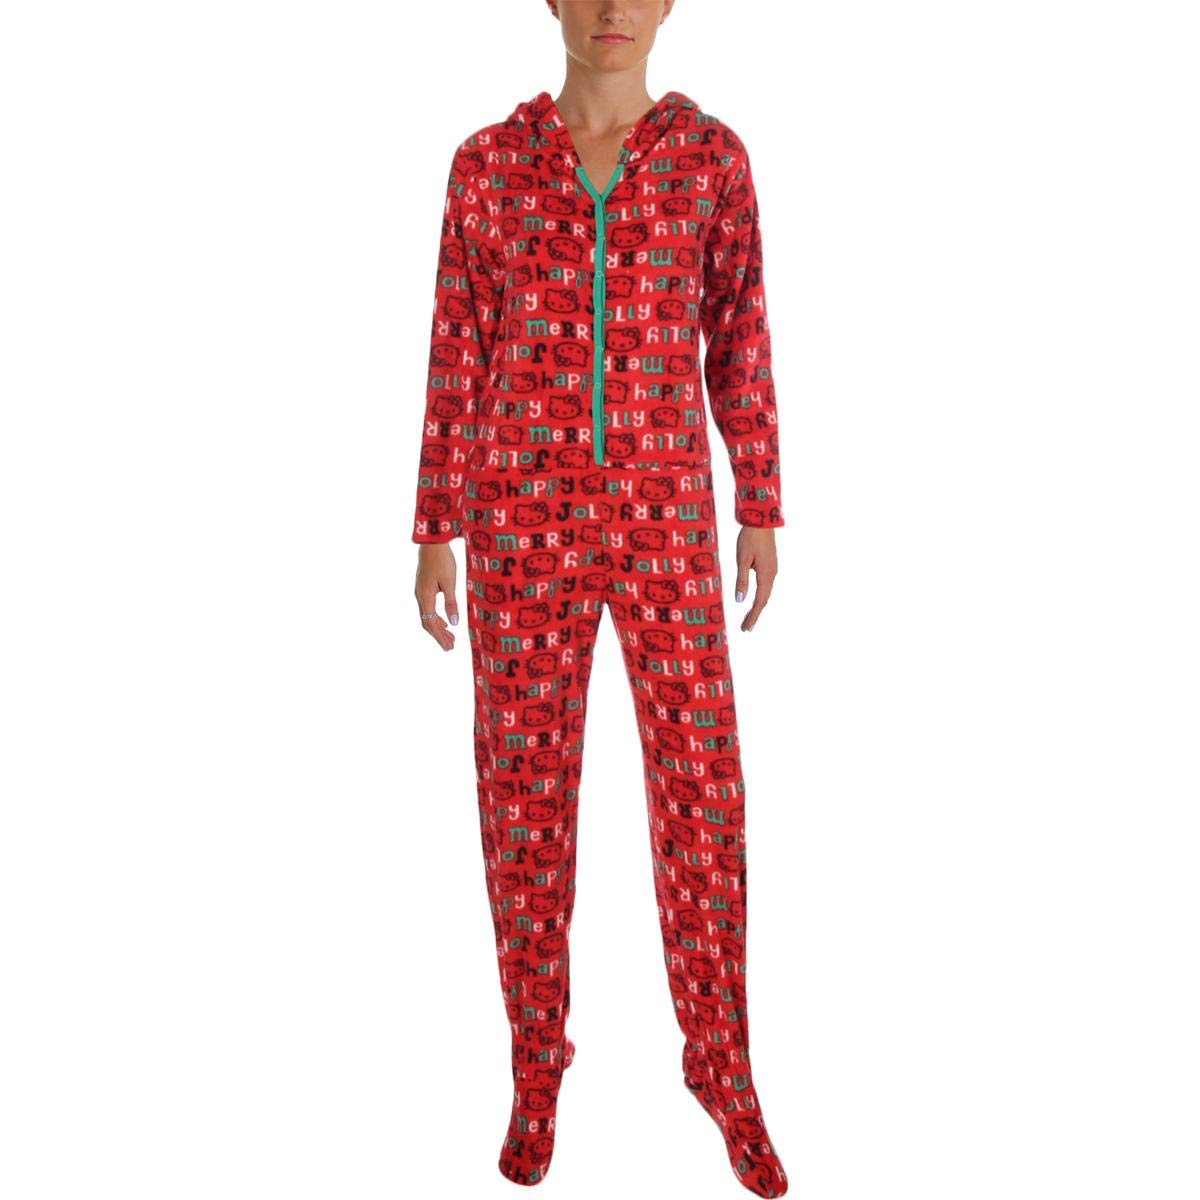 590bfaa2b Hello Kitty Womens Plus Size Snuggle Up Hooded Footed Jumpsuit Pajama 3X Red  at Amazon Women's Clothing store: